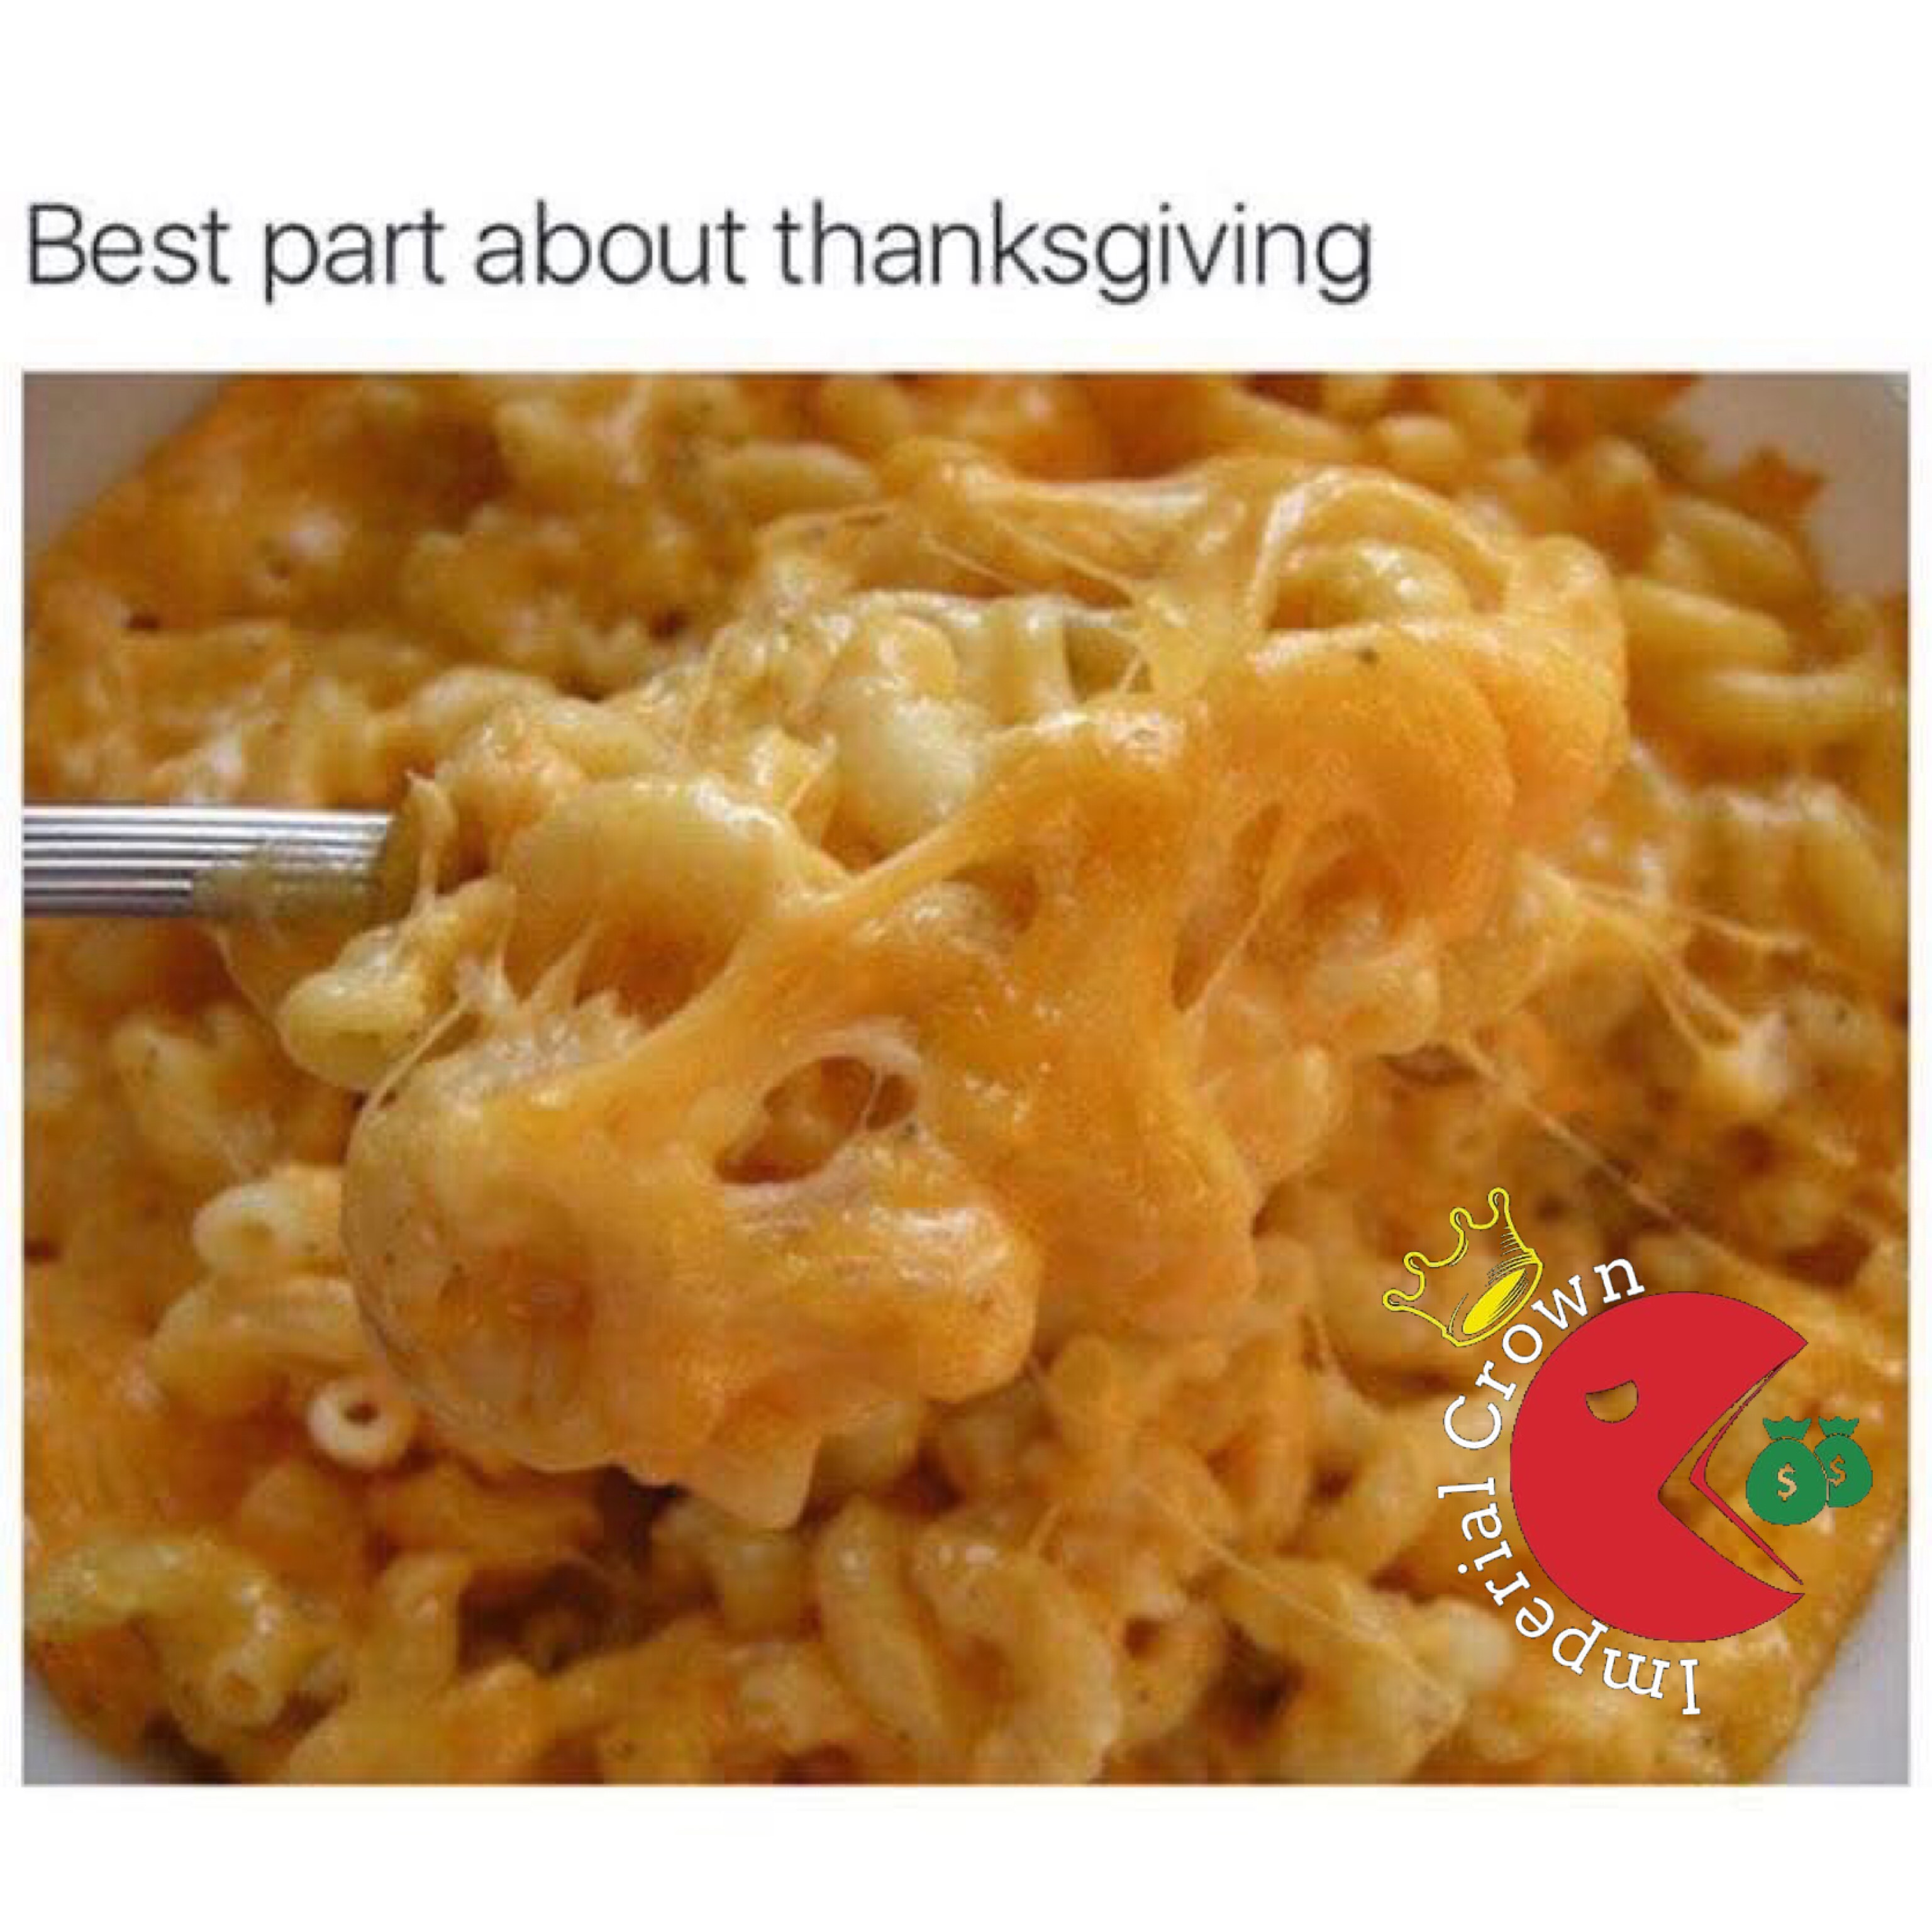 Best part about thanksgiving